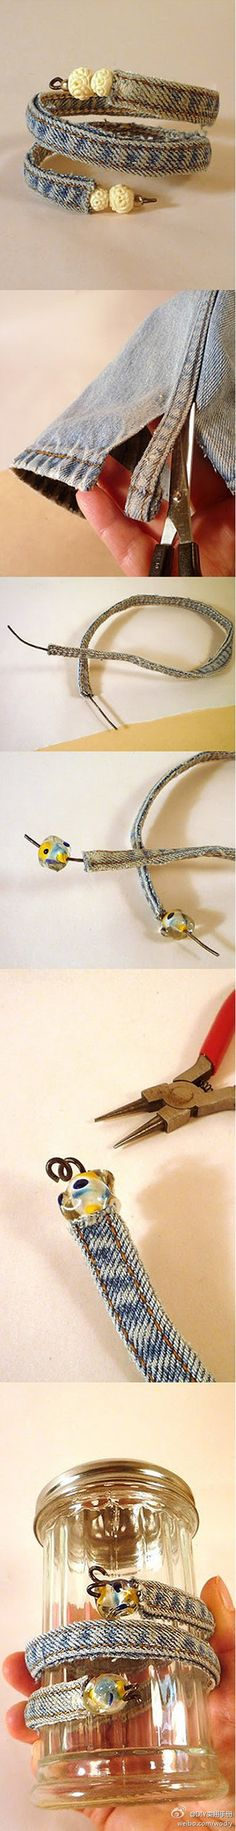 YAY! I have so many of these seams from cutting up old jeans. now I know what to…                                                                                                                                                                                 More